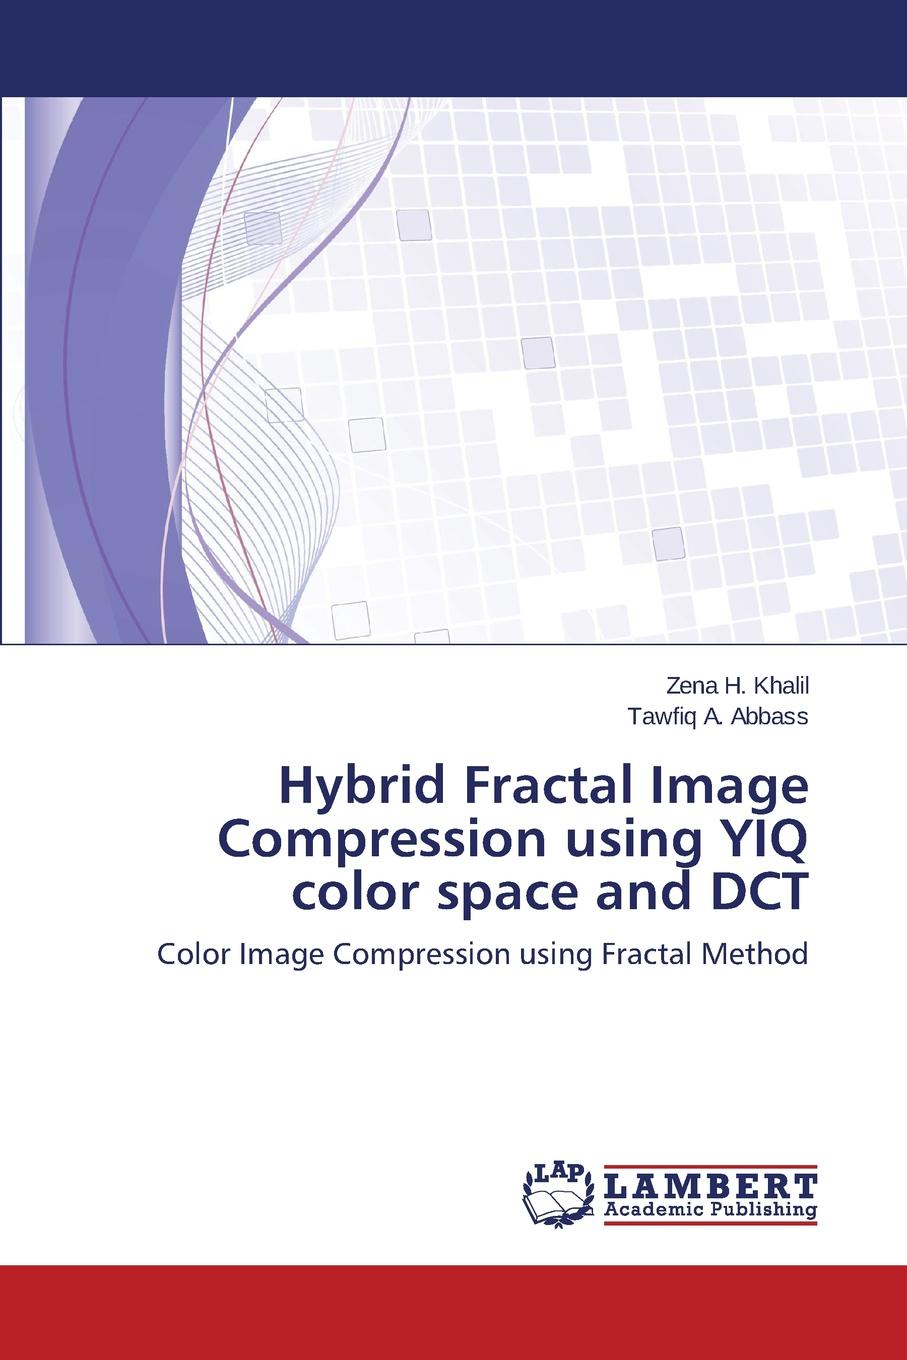 H. Khalil Zena, A. Abbass Tawfiq Hybrid Fractal Image Compression using YIQ color space and DCT цена 2017